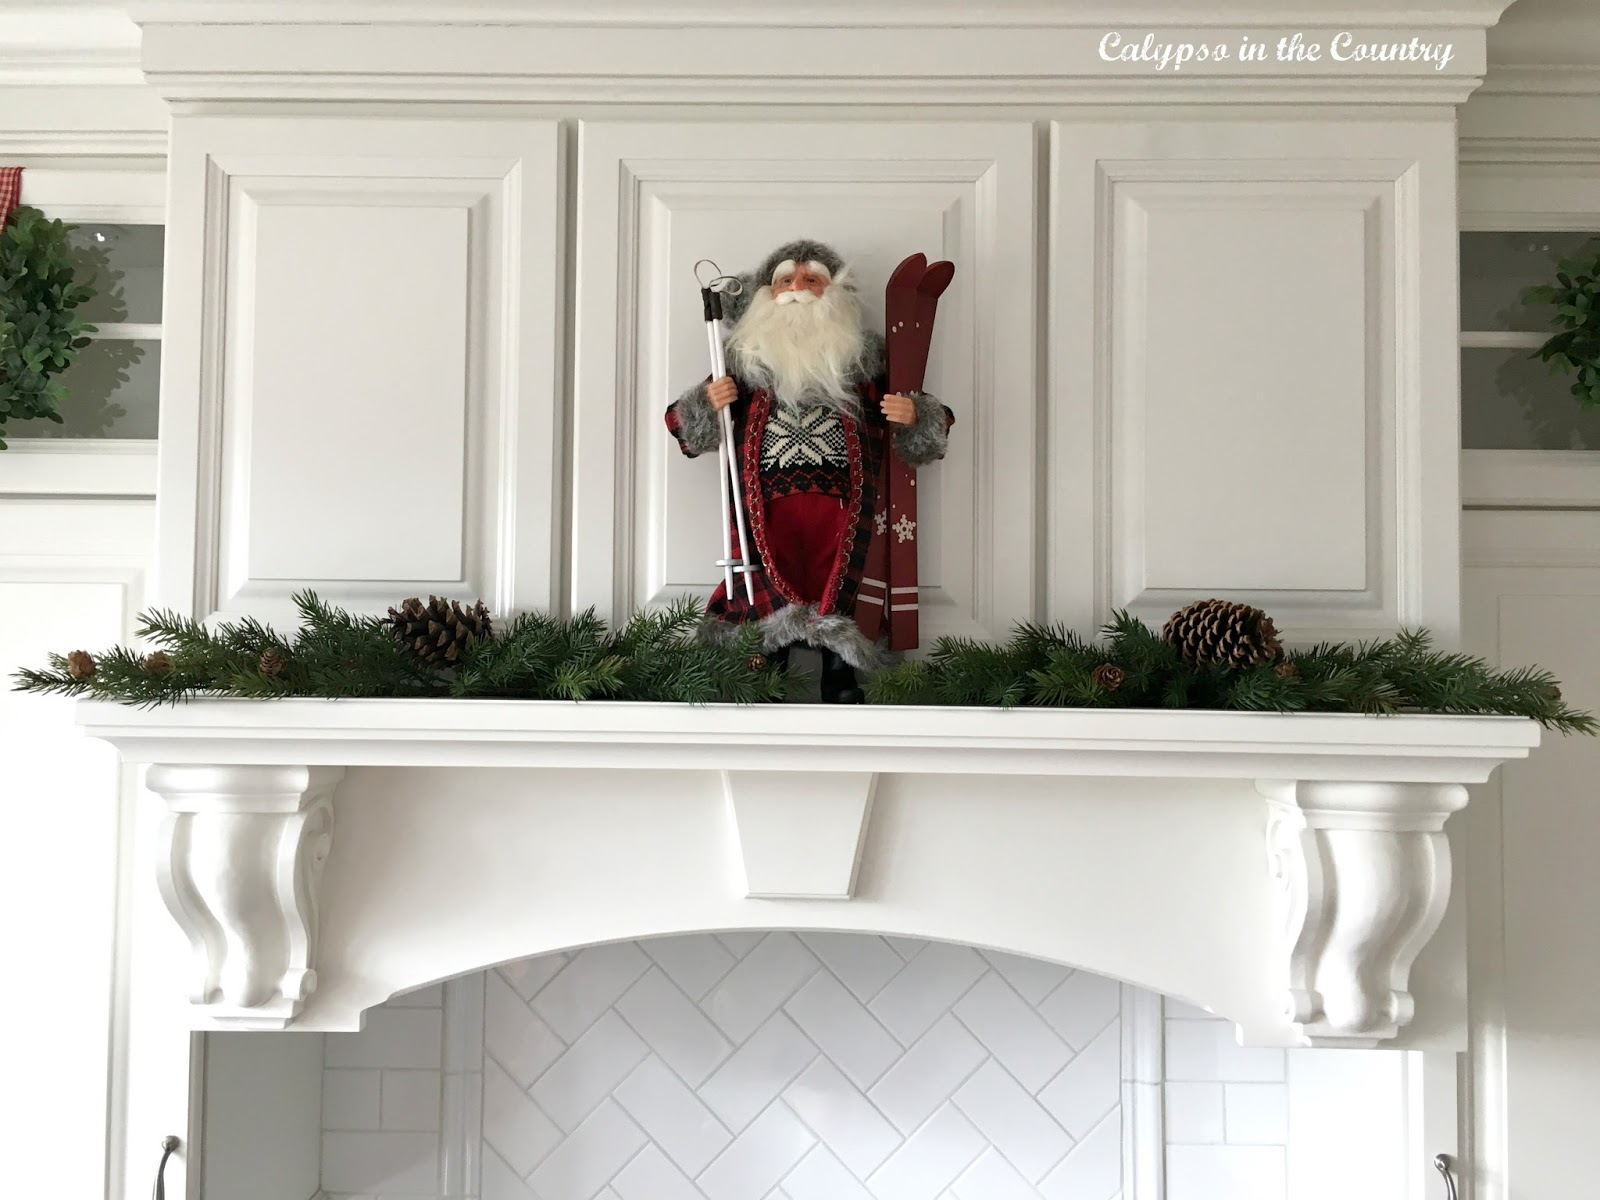 White Stove Hood with Santa